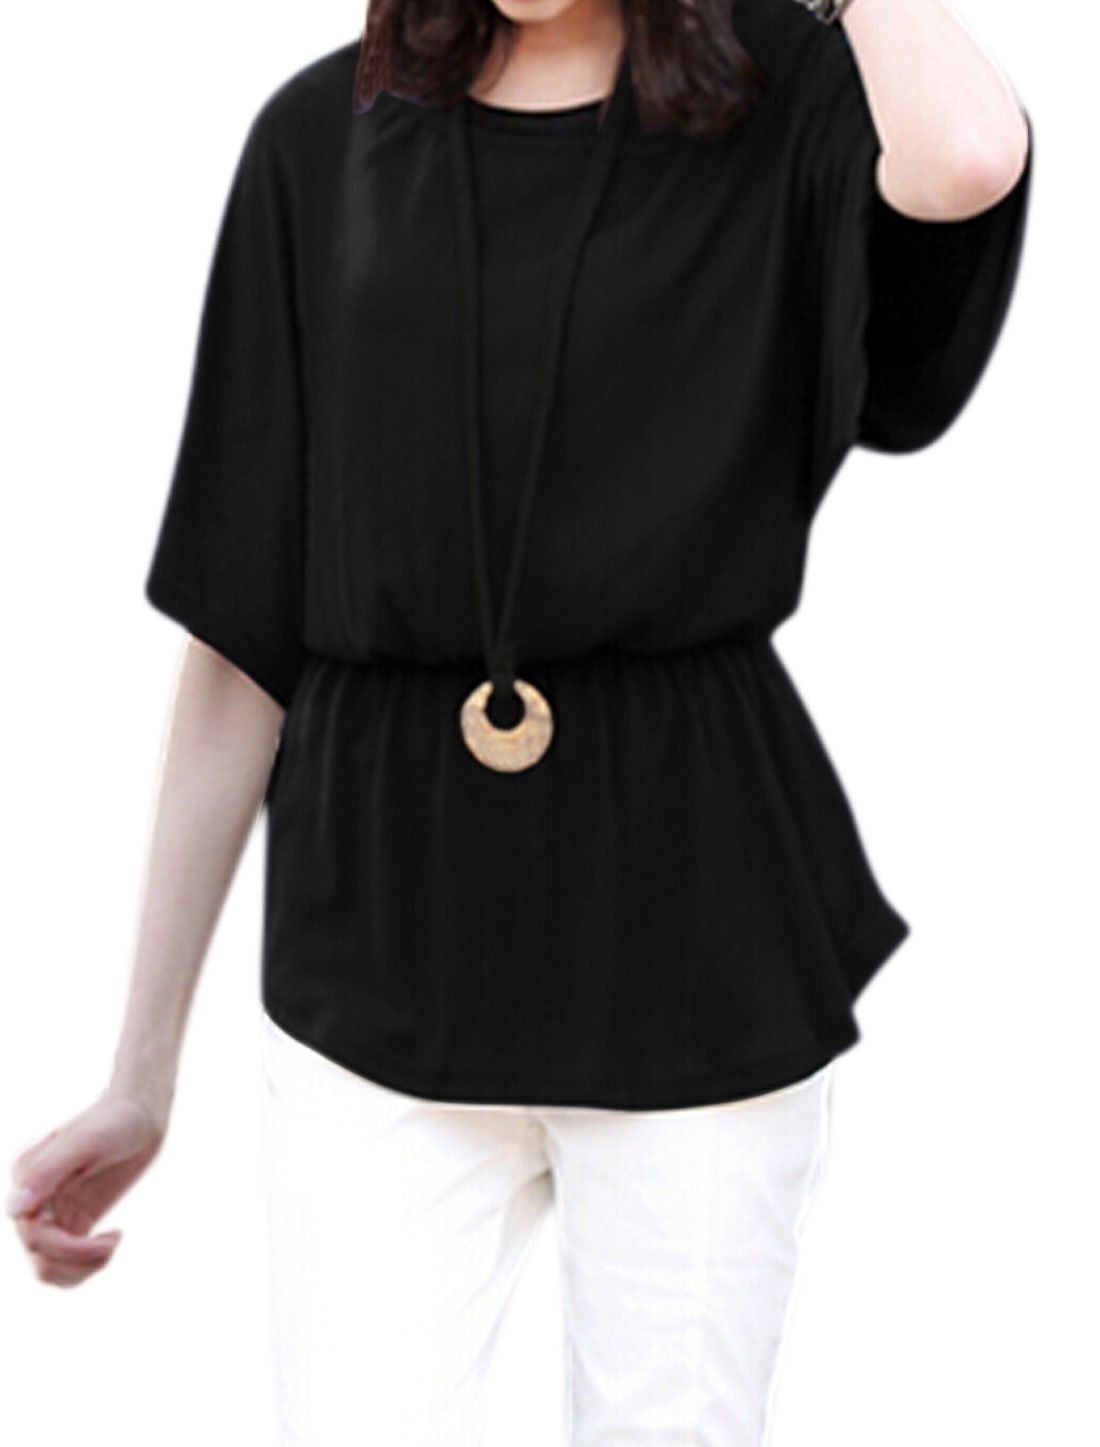 Women Elastic Waist Batwing Blouse w Sweater Cord Necklace Black XS